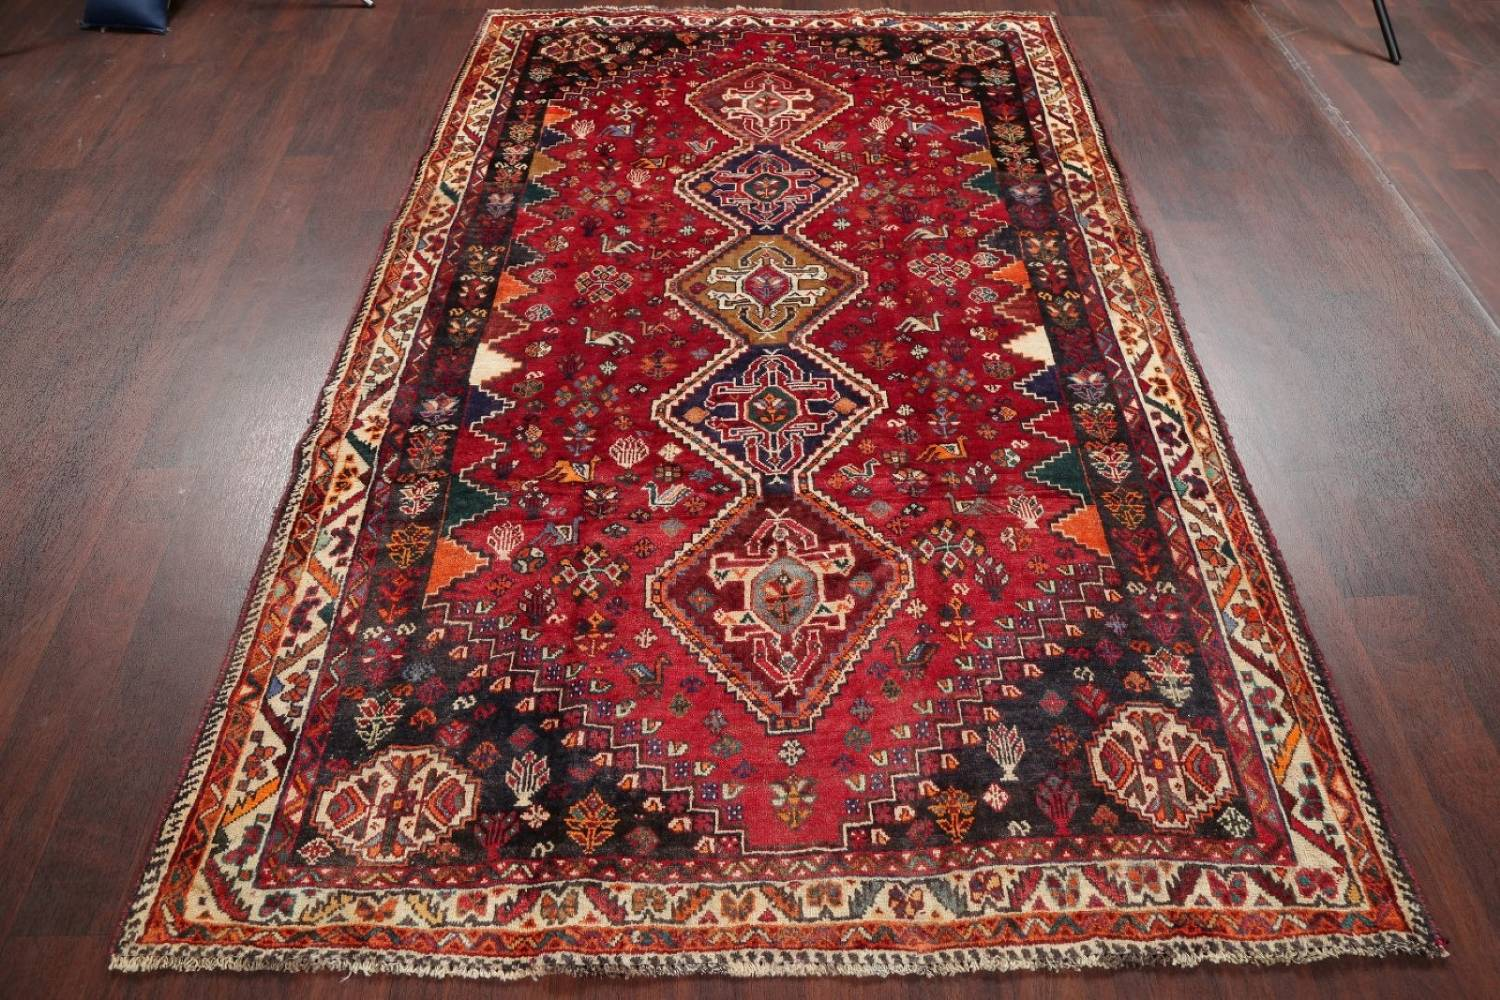 Antique Tribal Red Geometric Abadeh Persian Hand-Knotted 5x8 Wool Area Rug image 17